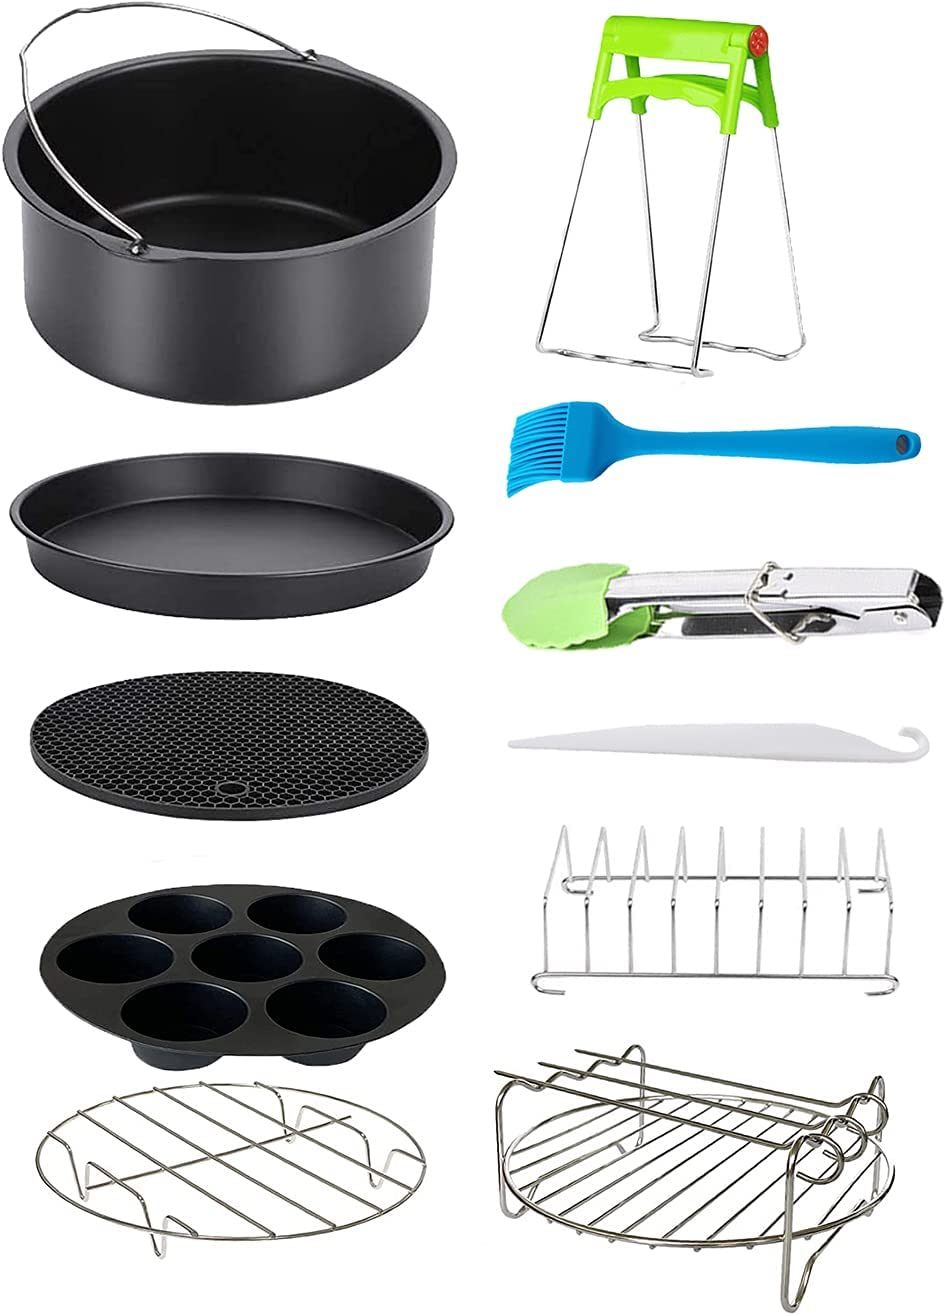 Air fryer accessories set 7 inches 11 pieces Air Fryer Compatible for 7 inch Air Fryers and Oven cake molds instant vortex air fryer accessories